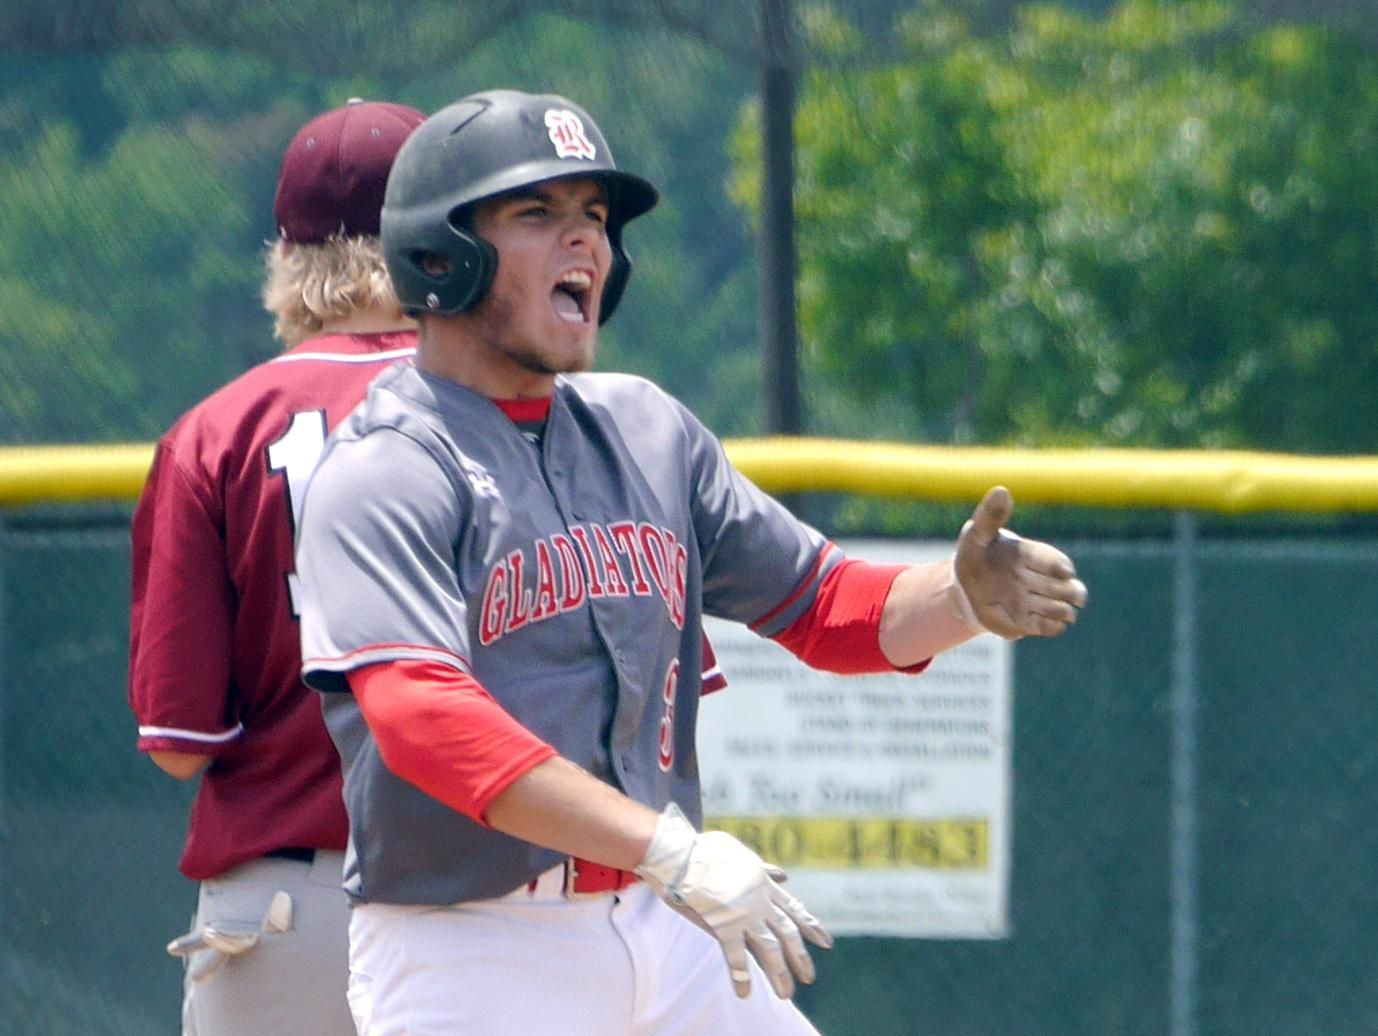 Riverheads #3, Colt Miller reacts to hitting a double for an RBI against Luray in the thirds inning putting Riverheads in the lead 2-1 on Monday, May 30, 2016 at Riverheads High School. Riverheads beat Luray 3-1 to advance in the playoffs.